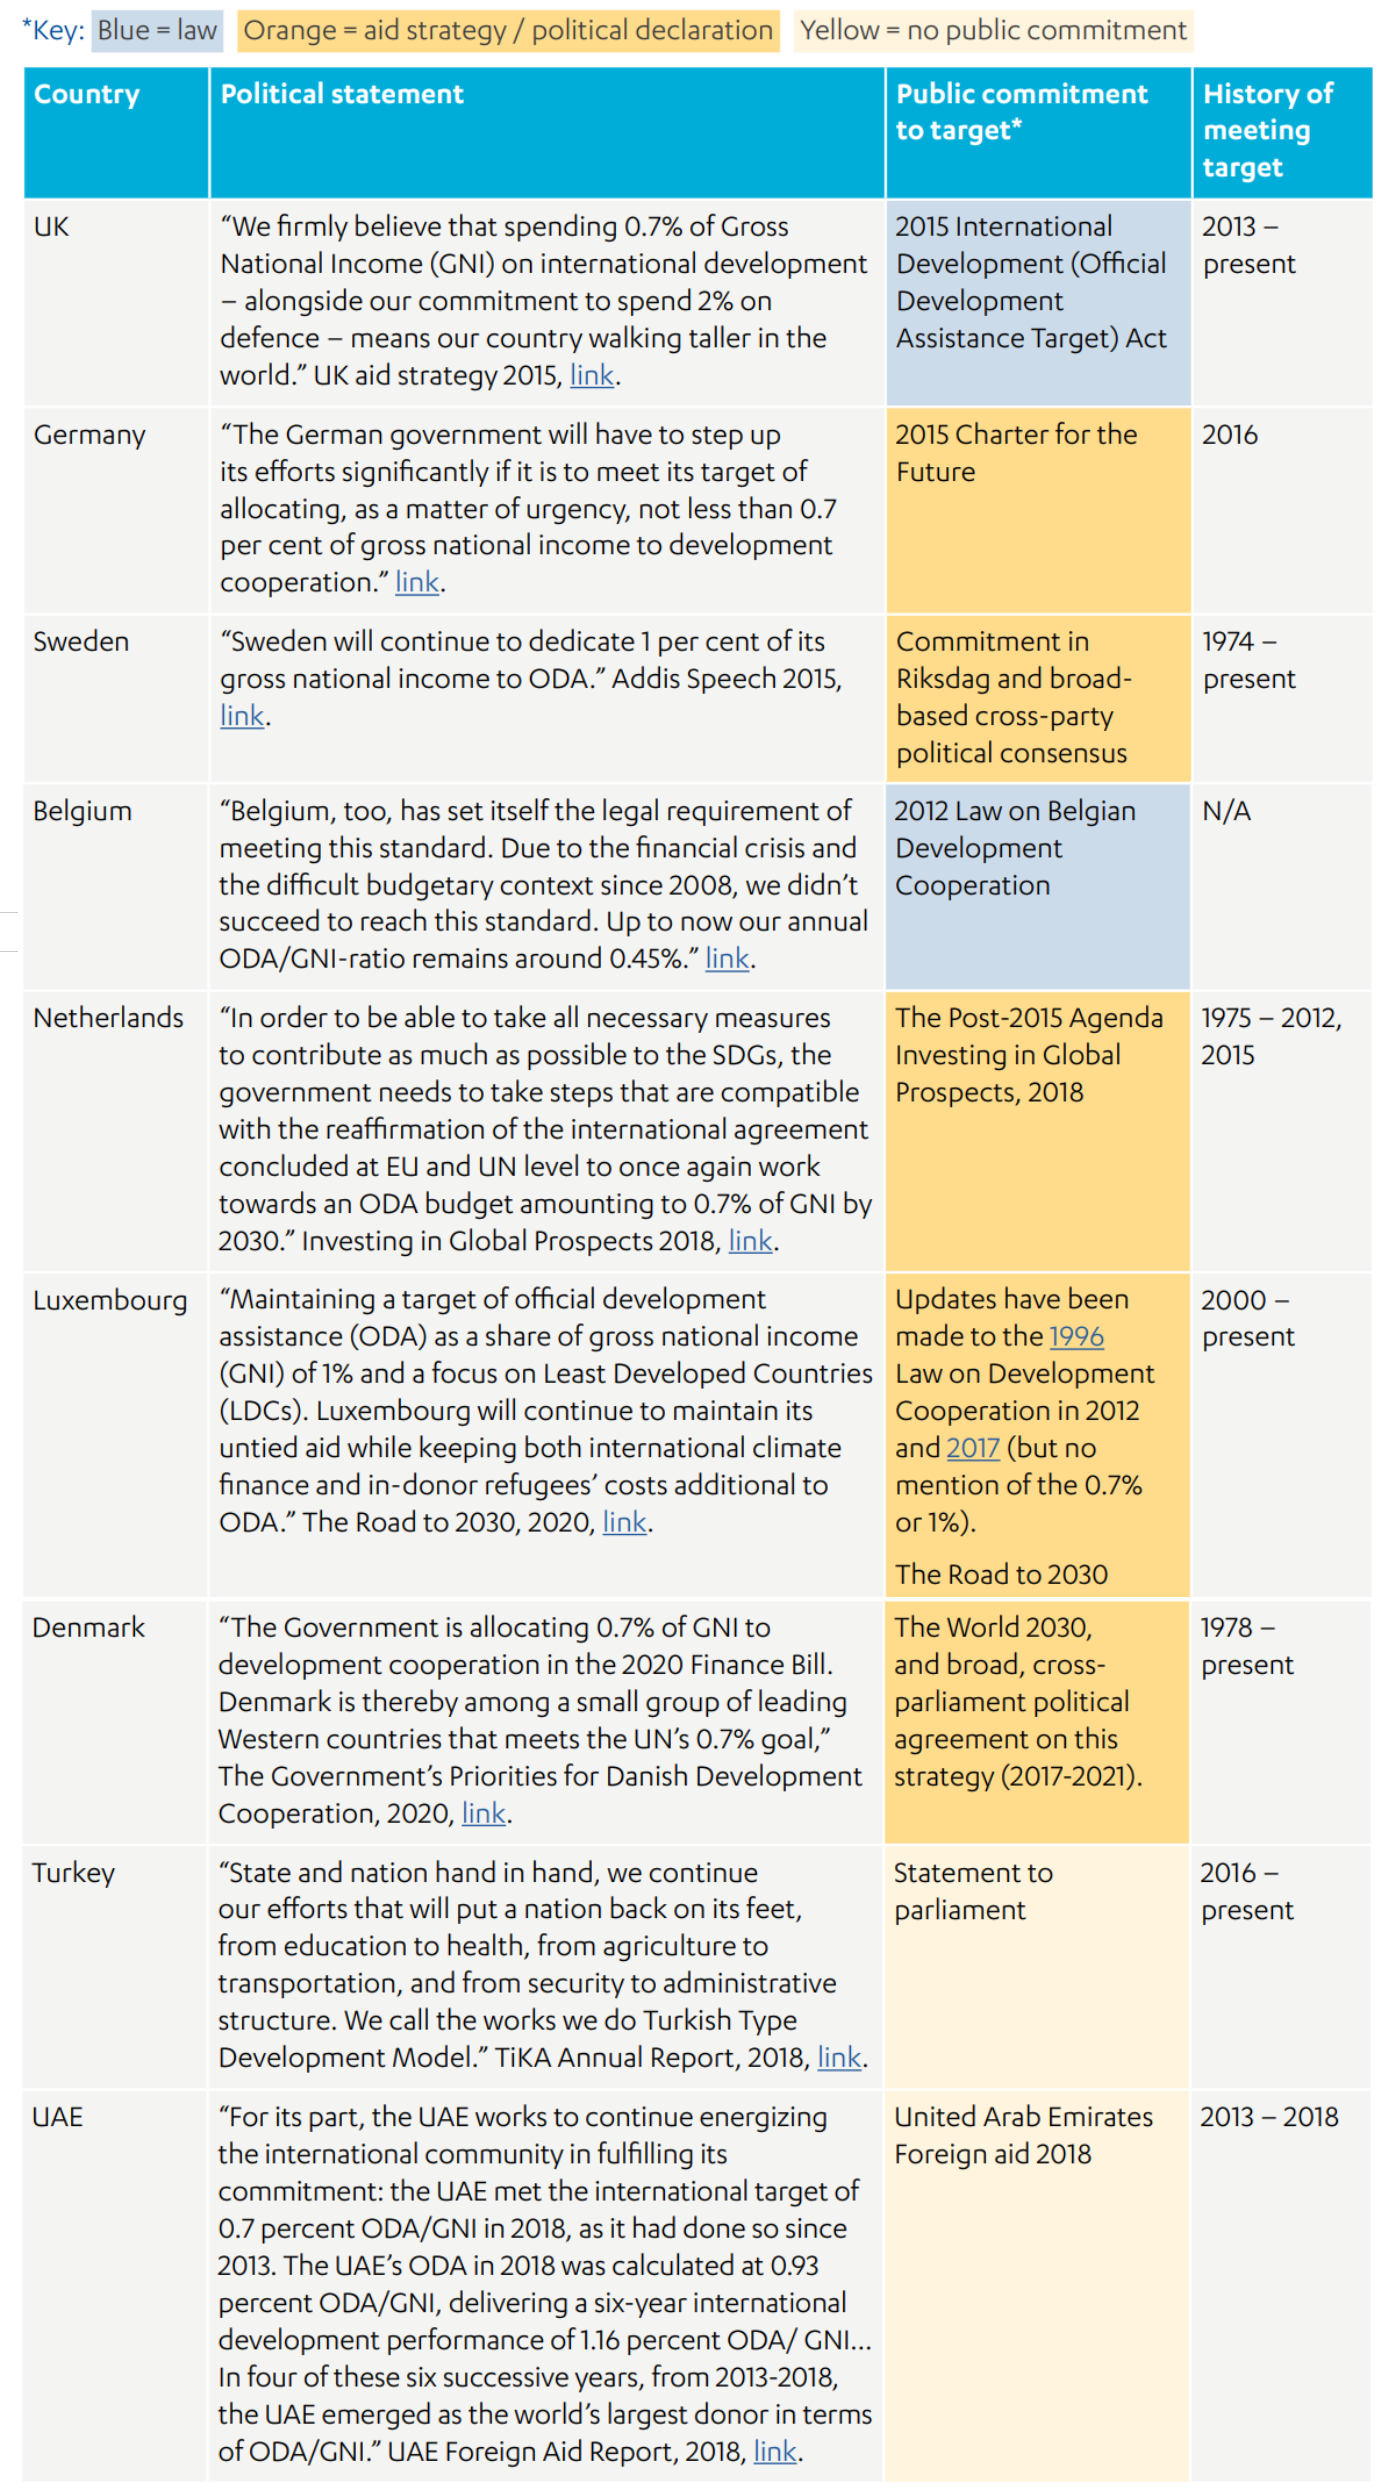 Comparison of donor policy statements and history of meeting the ODA target